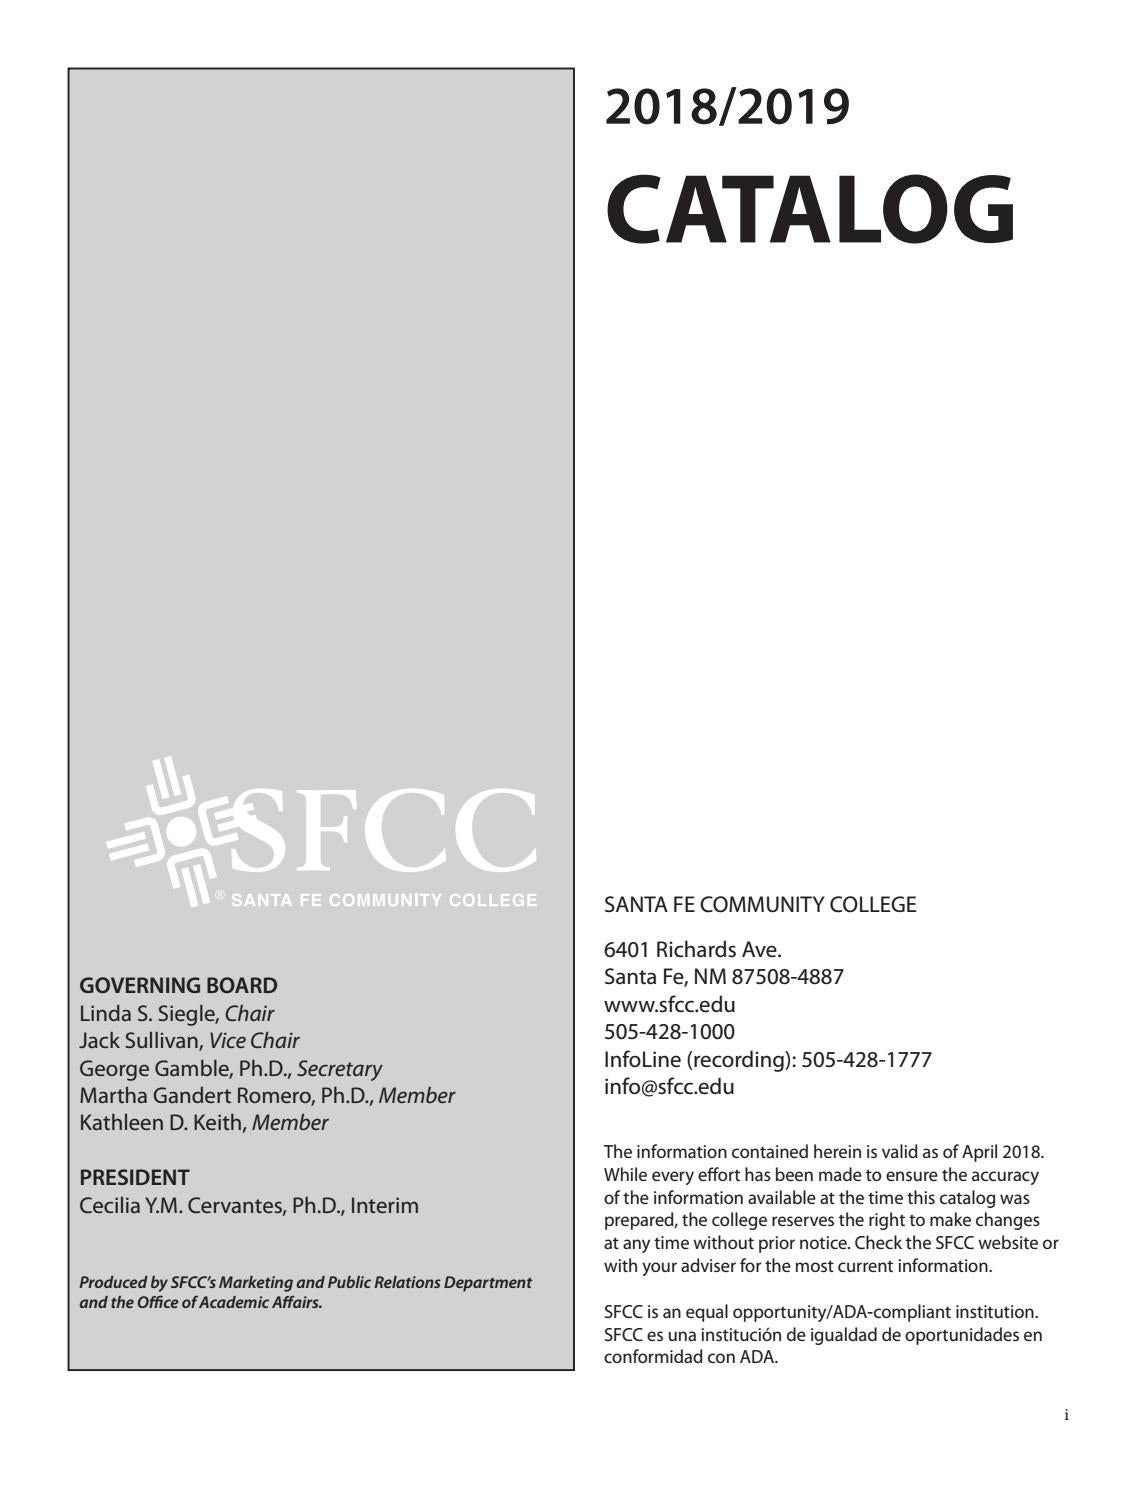 2019 Catalog Web By Santa Fe Community College Issuu How To Build Whistle Responder Circuit Diagram